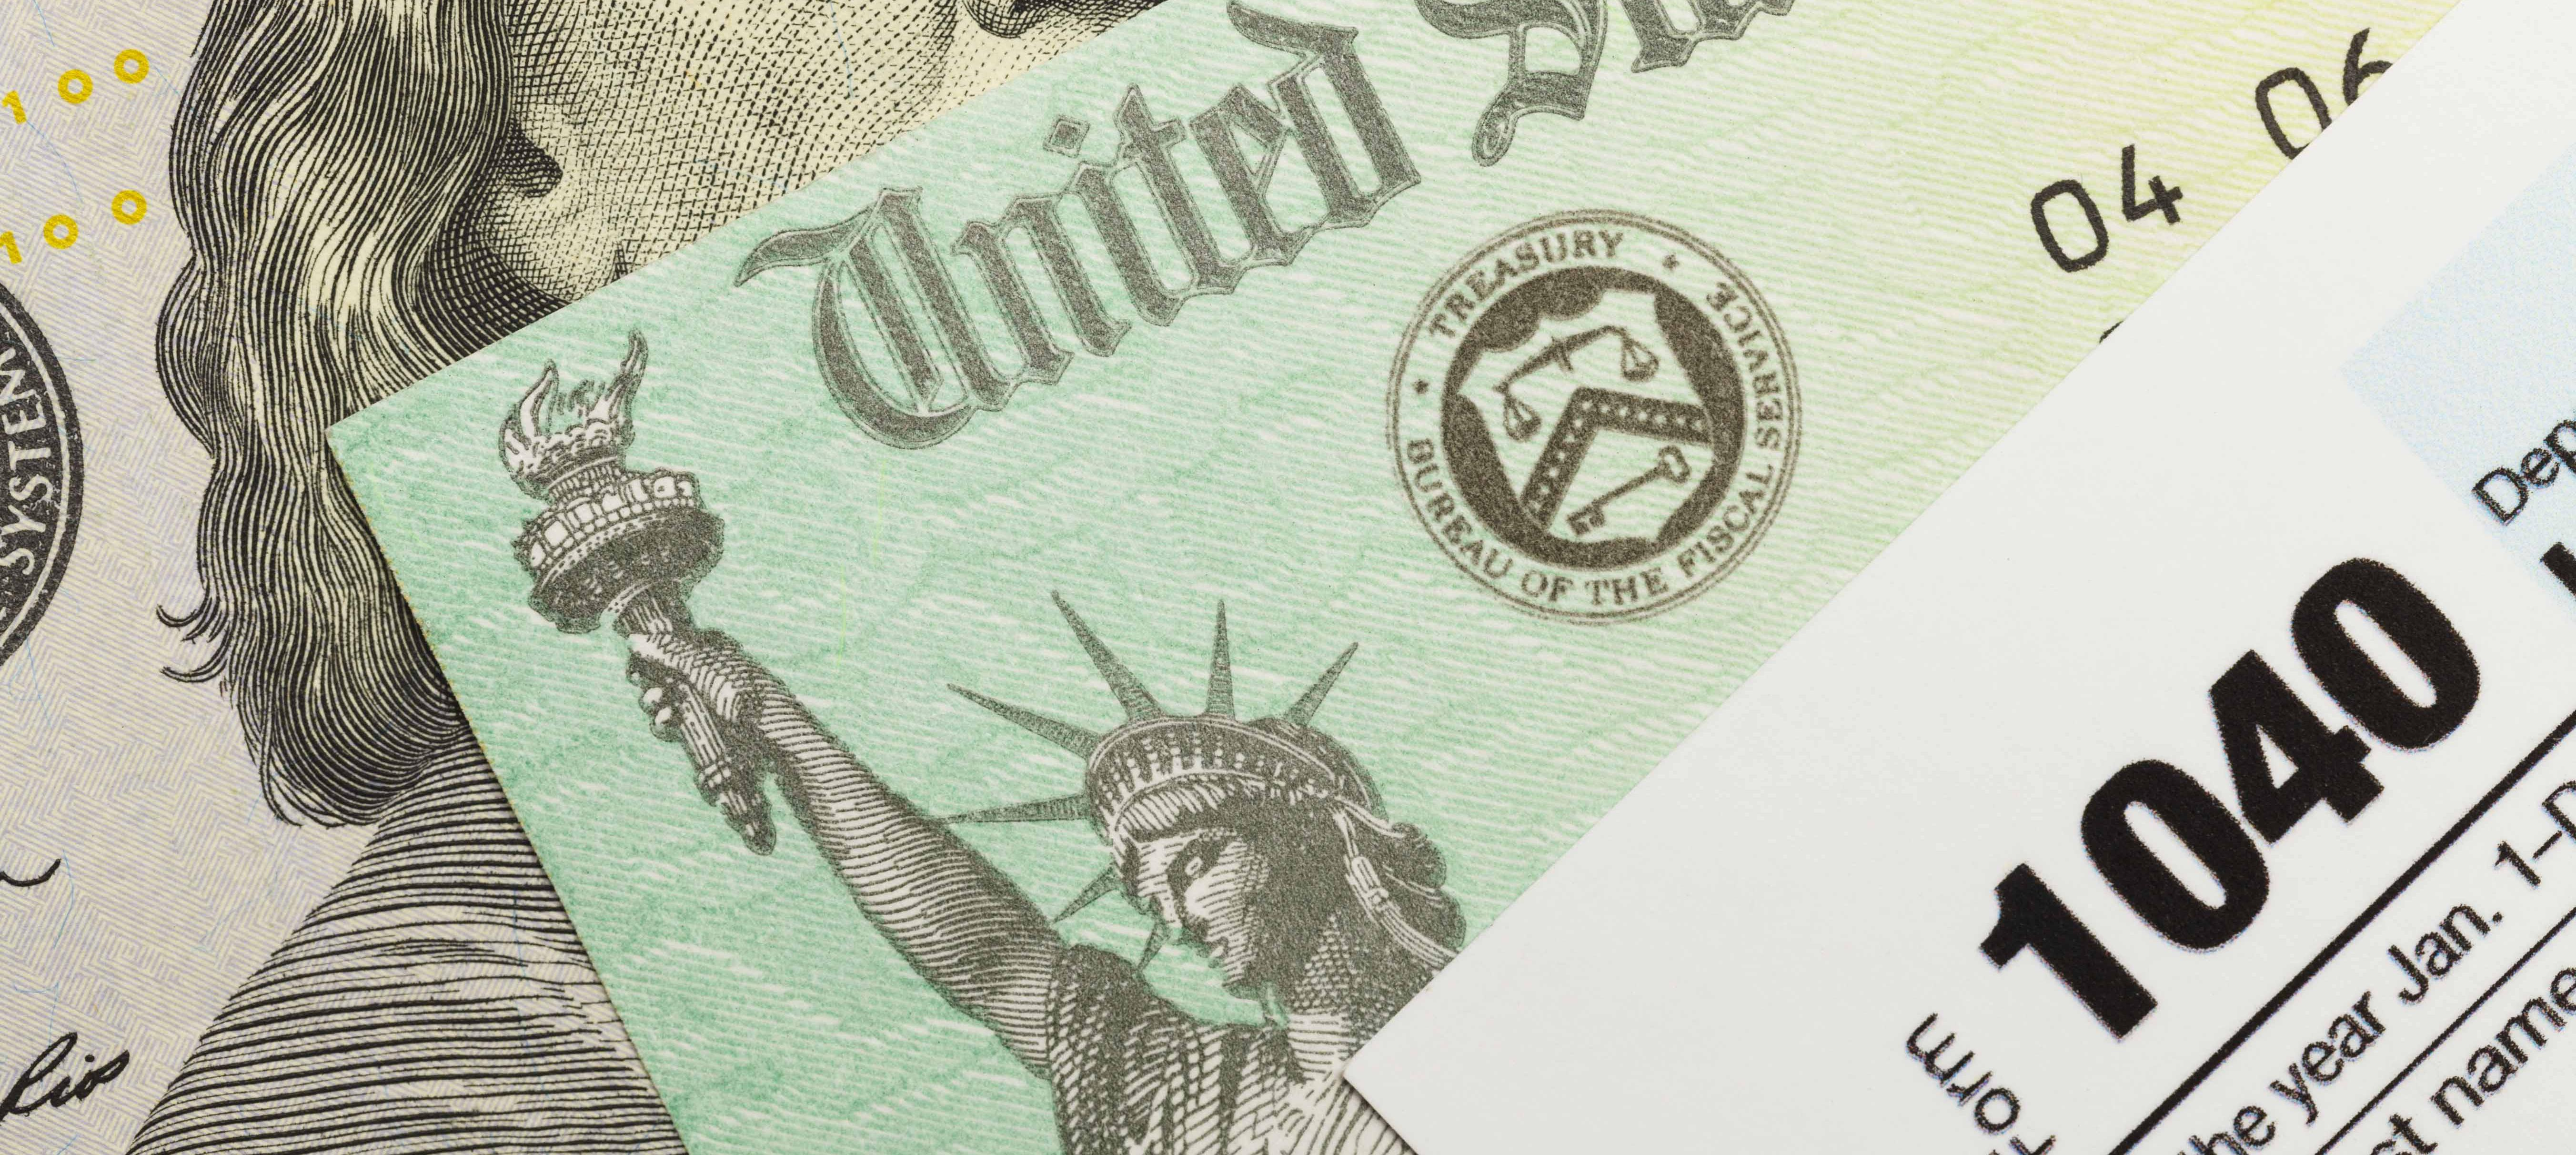 U.S. 1040 form against a backdrop of a U.S. Treasury Check